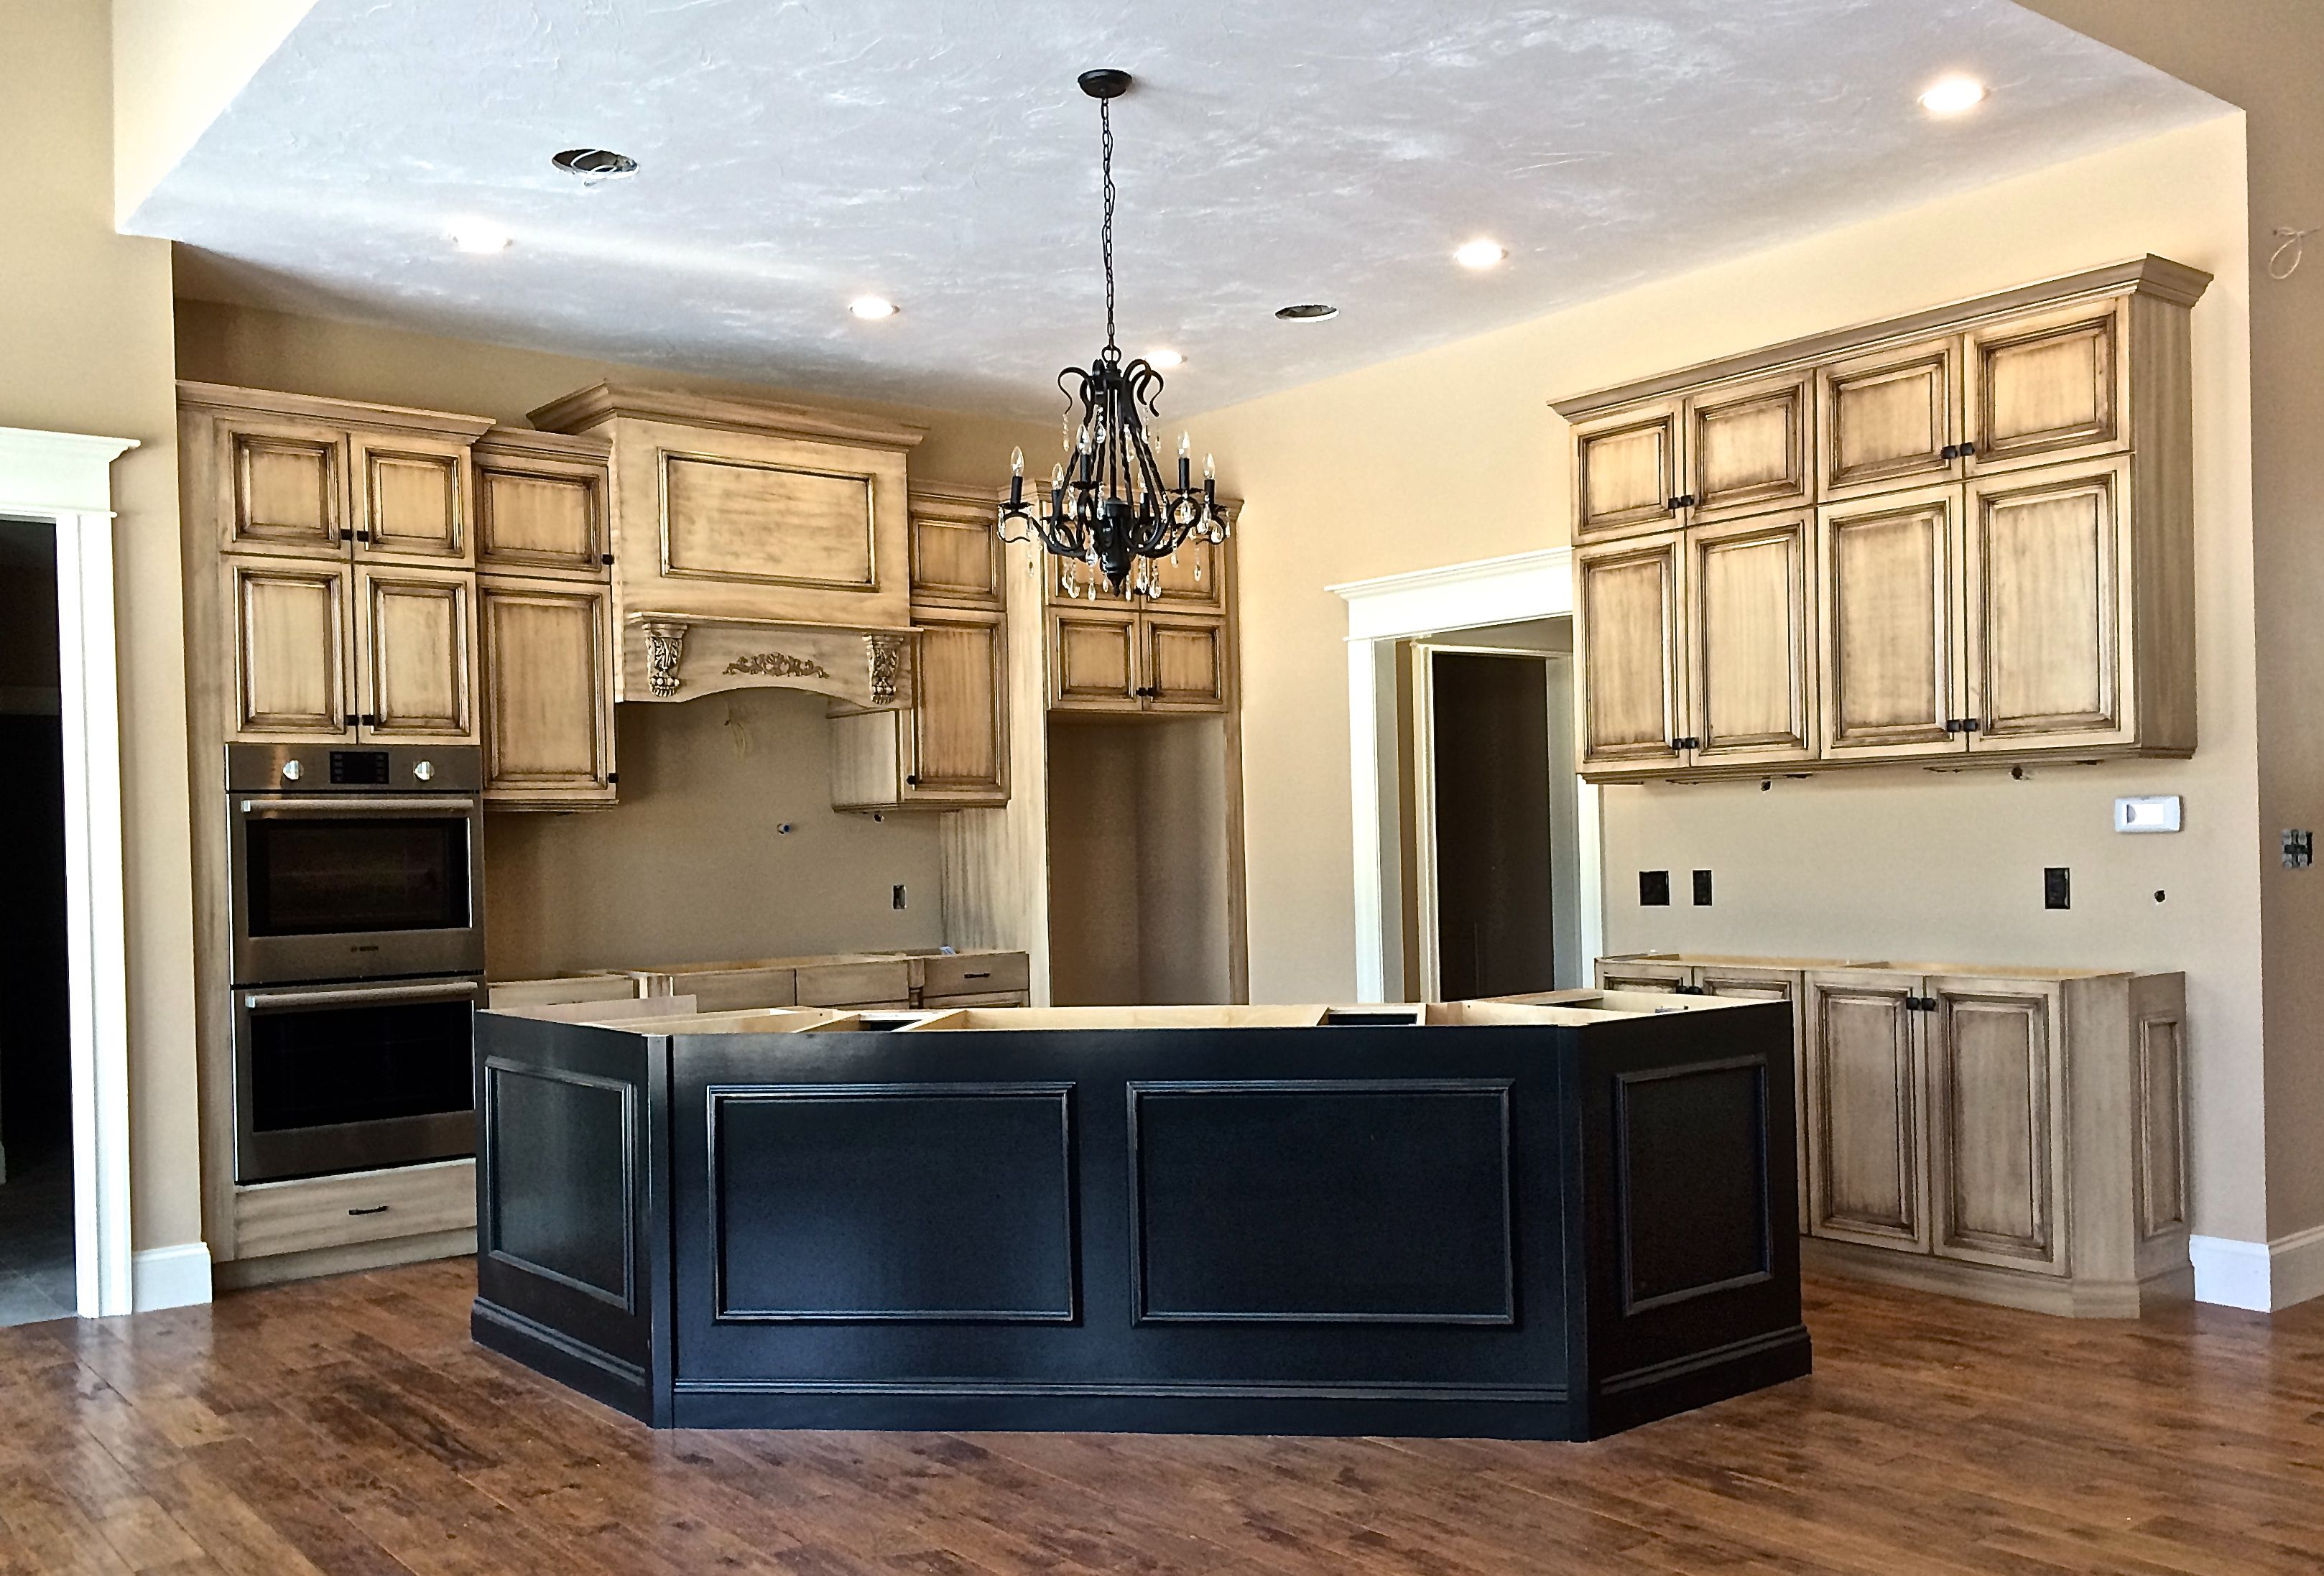 Frameless Full Overlay Cream Colored Cabinets With A Dark Brown Glaze Kitchen Cabinets Glazed Kitchen Cabinets Diy Kitchen Cabinets